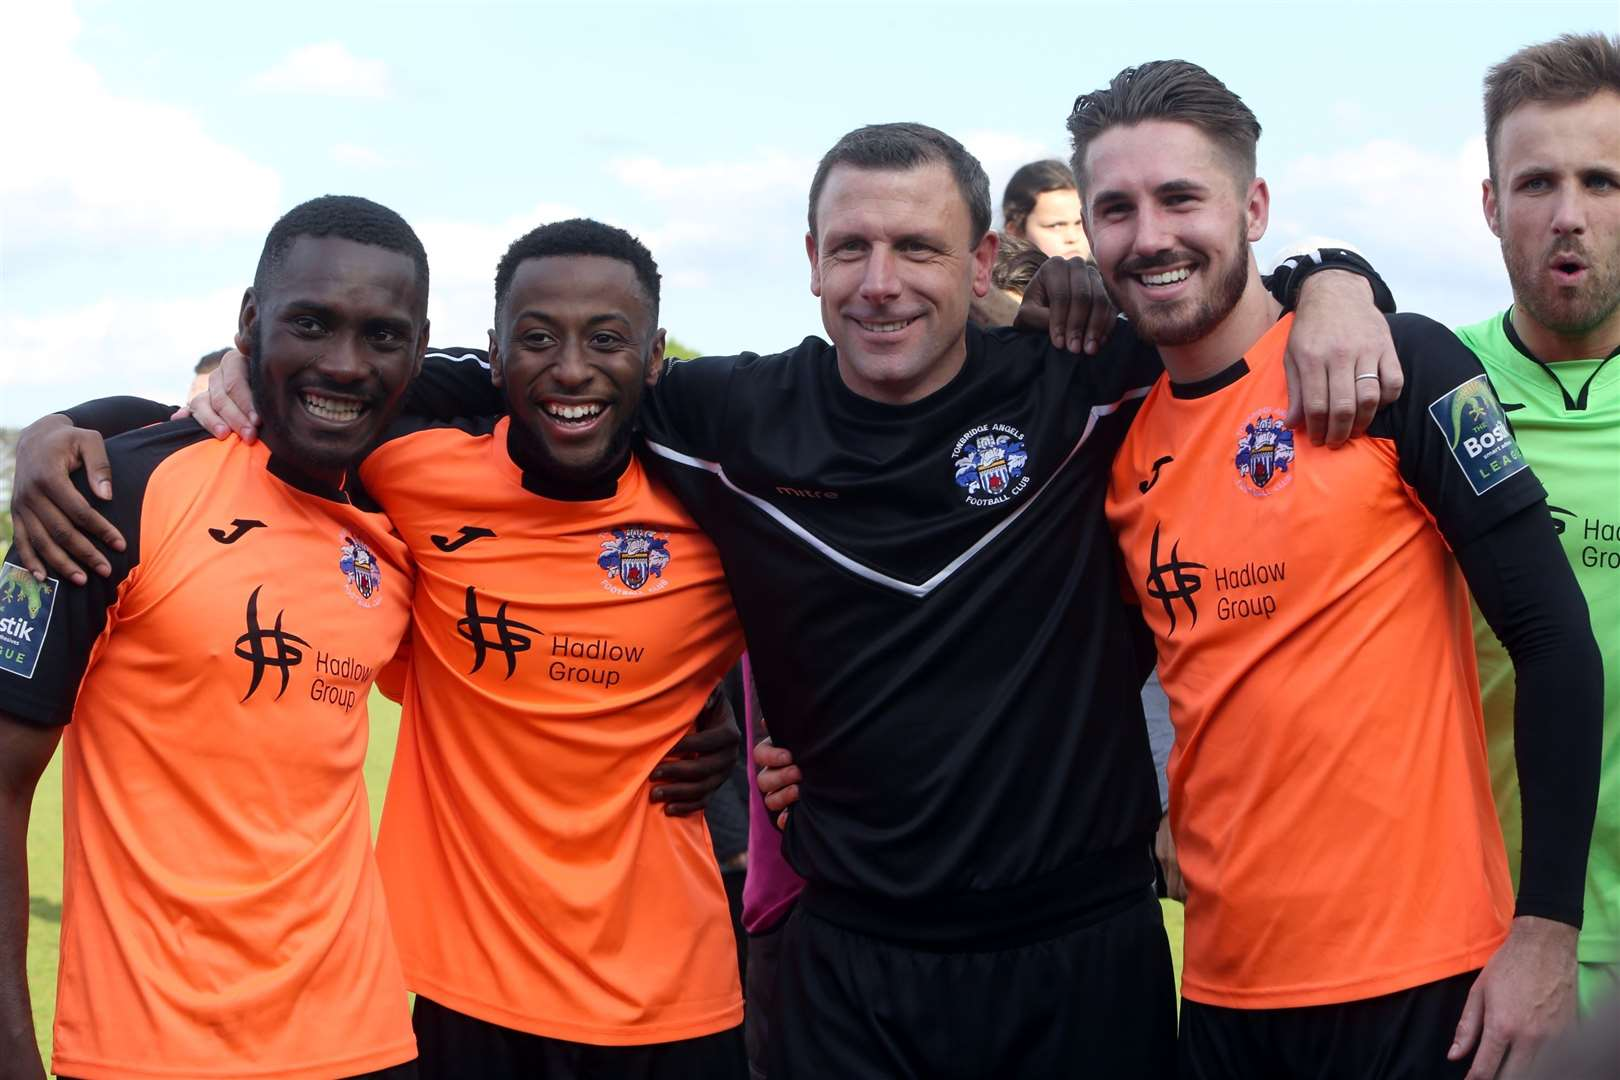 Steve McKimm and Tonbridge are getting ready for National League South Picture: David Couldridge